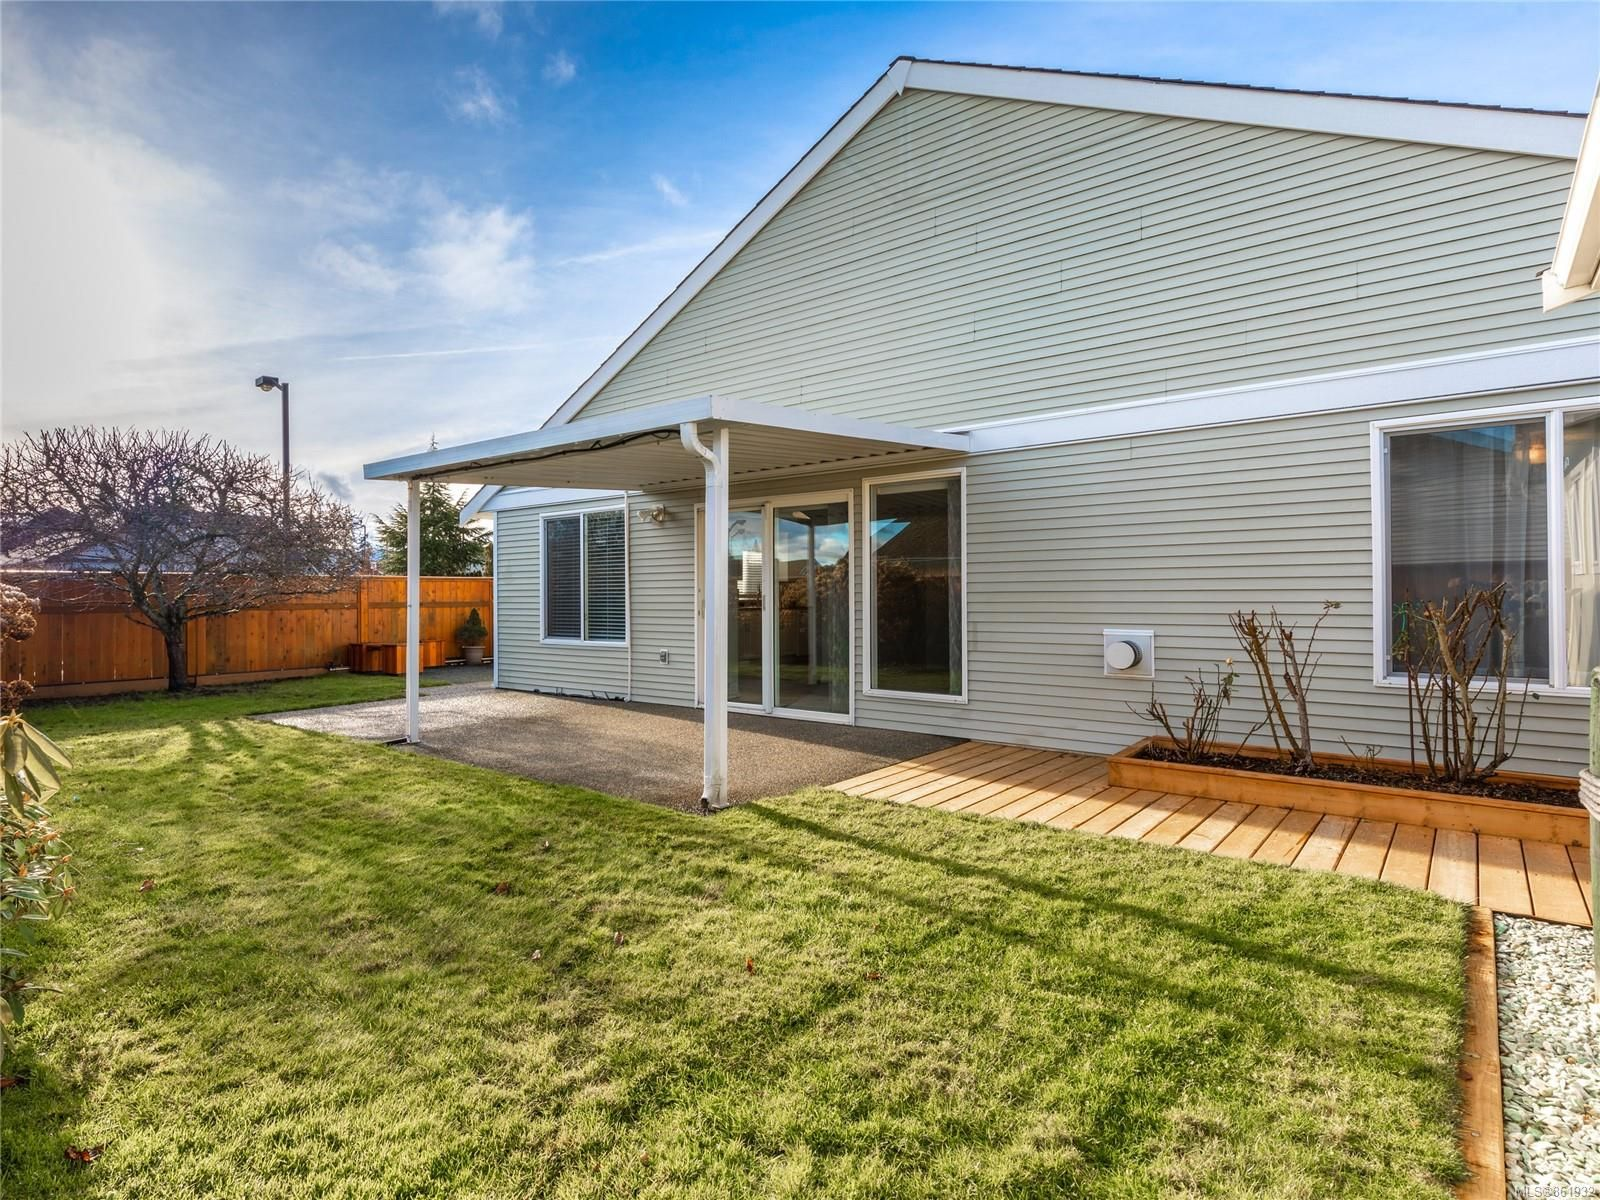 Photo 14: Photos: 300 Church Rd in : PQ Parksville House for sale (Parksville/Qualicum)  : MLS®# 861932